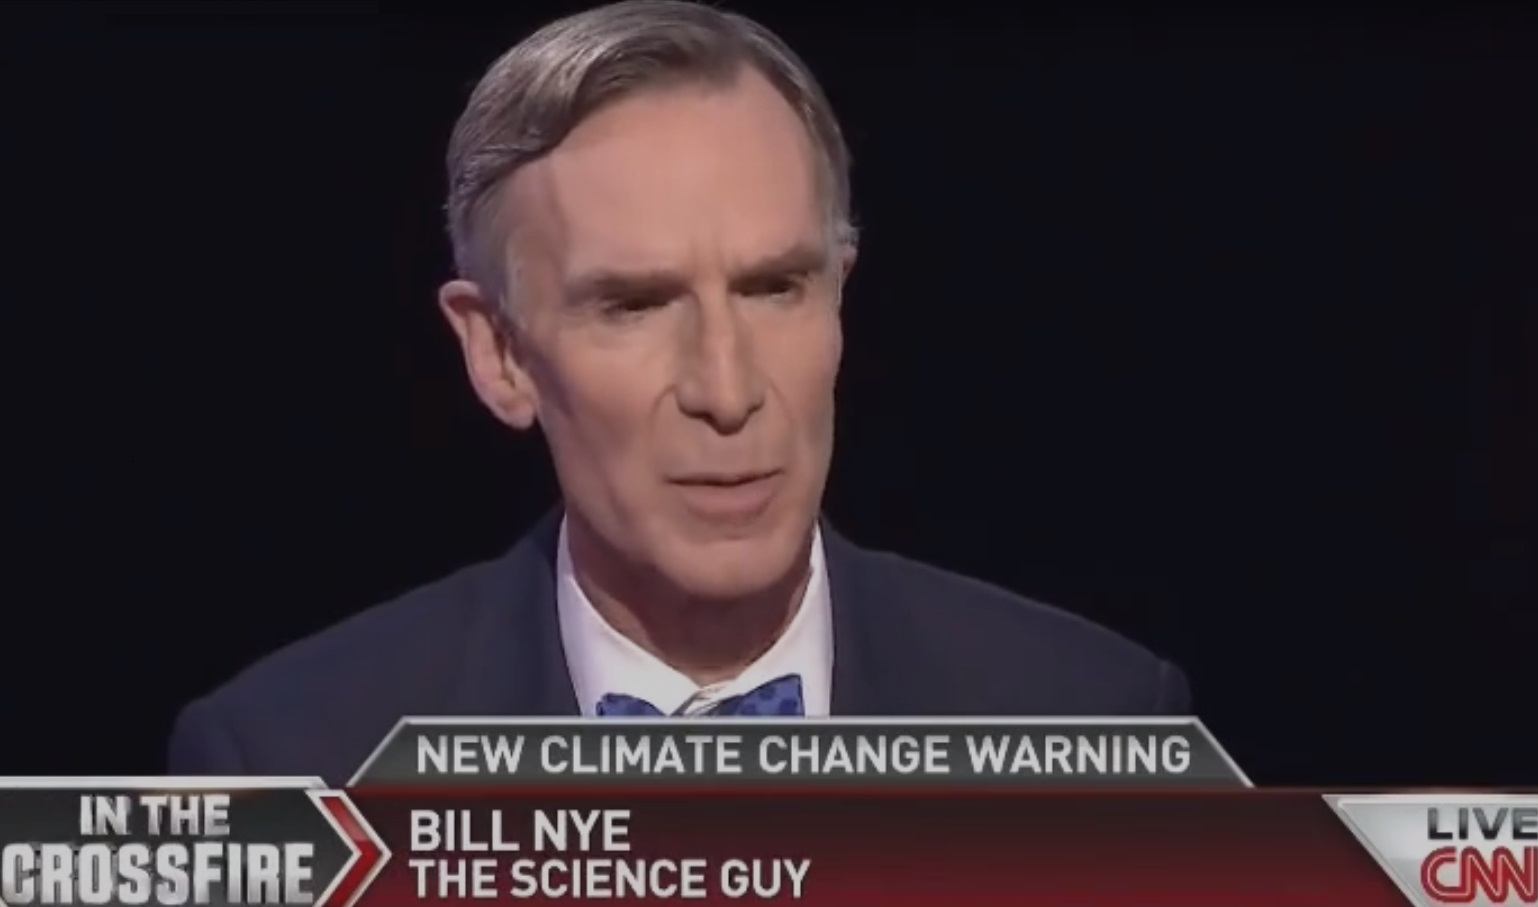 Image: How can Bill Nye understand anything about science when he can't even understand the U.S. Constitution?